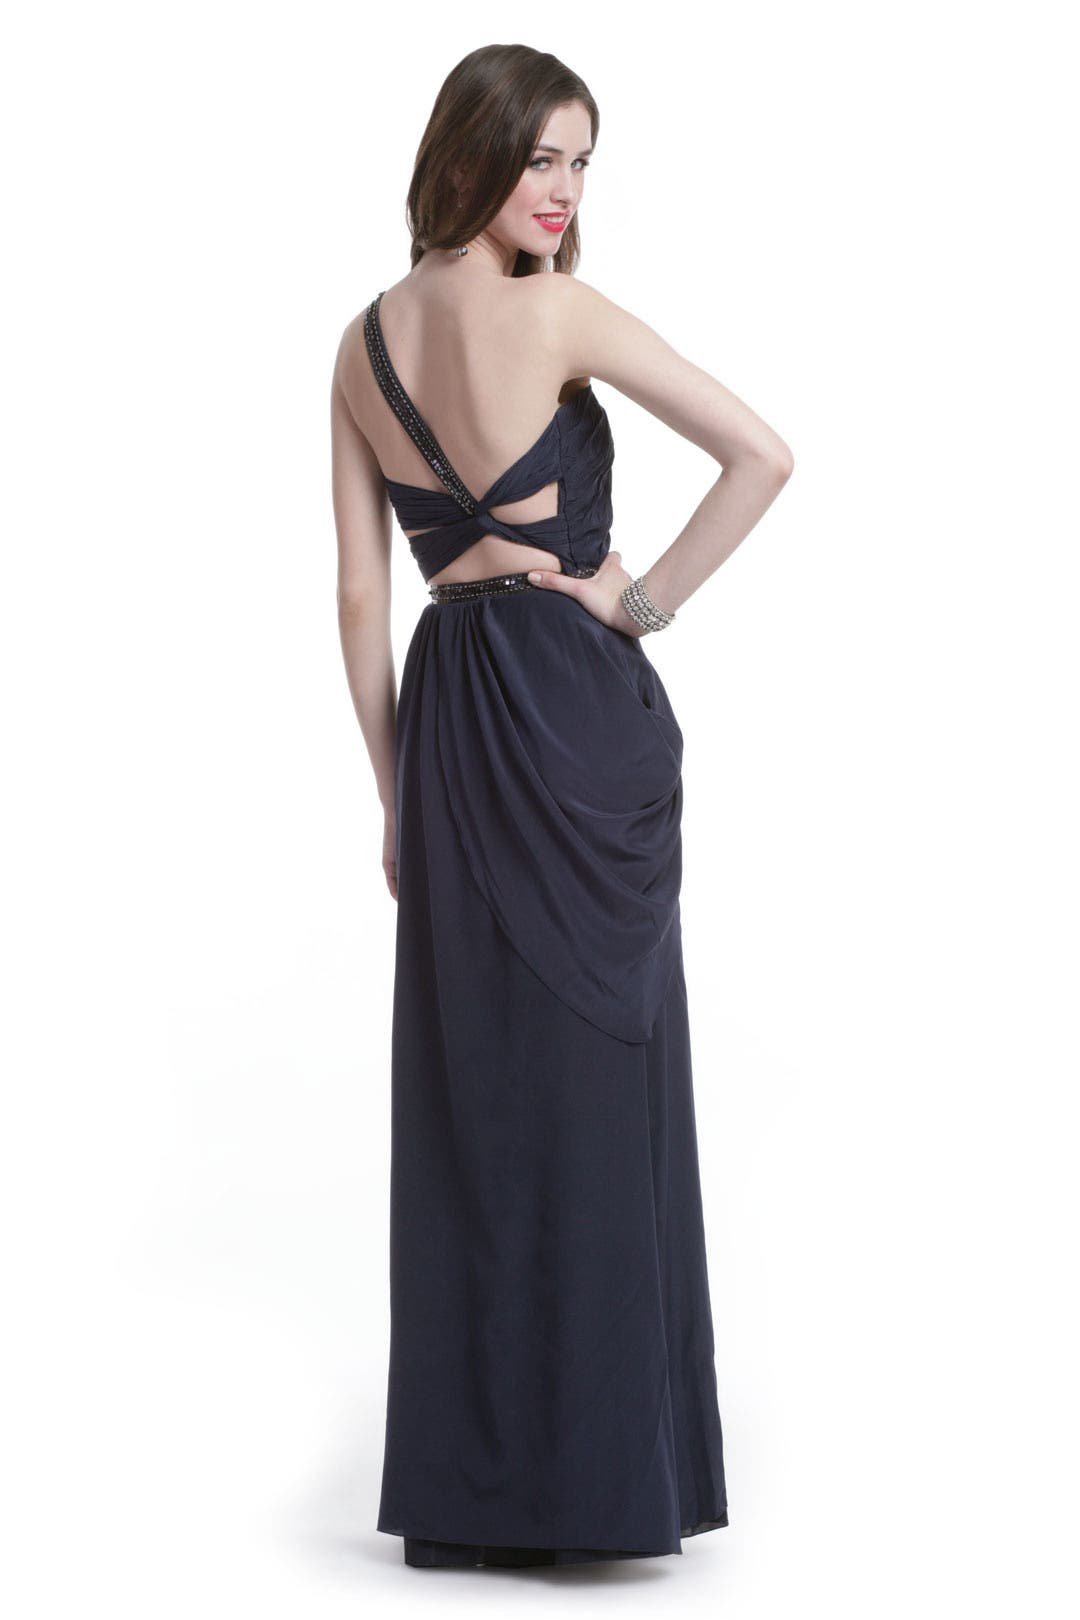 In the Navy Gown by Carlos Miele